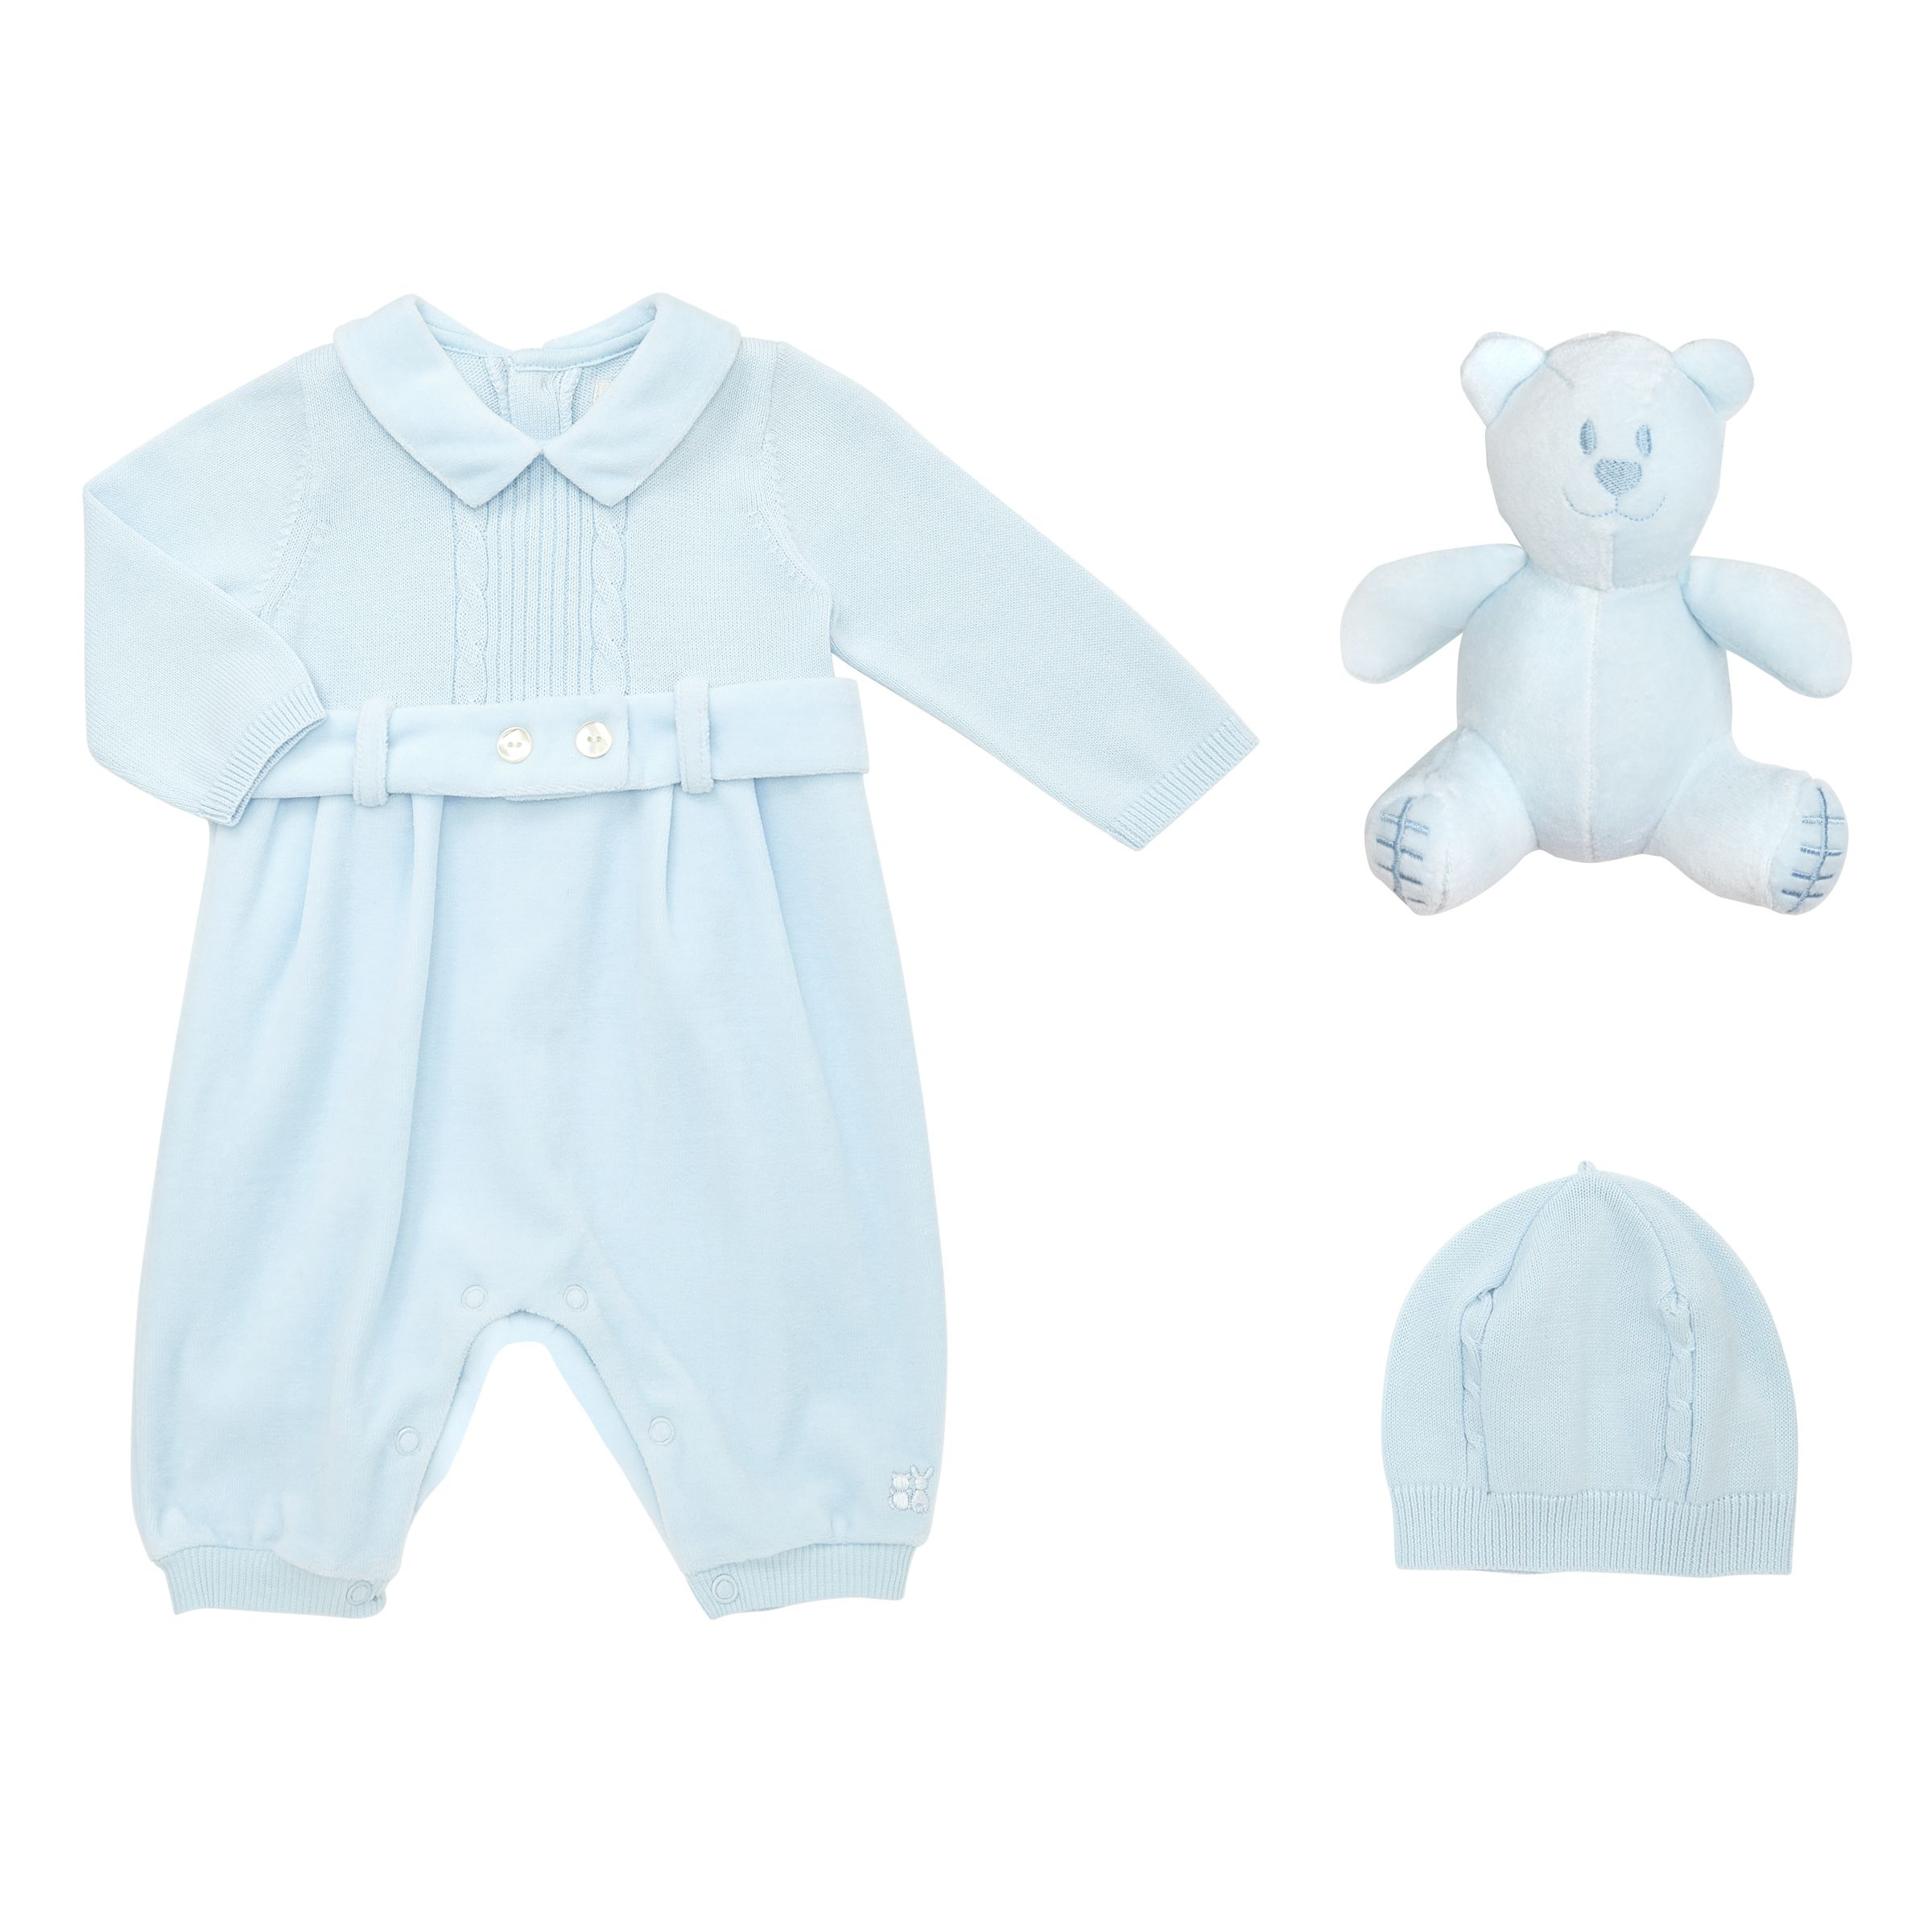 Emile et Rose Emile et Rose Baby Gatsby Romper And Hat Set